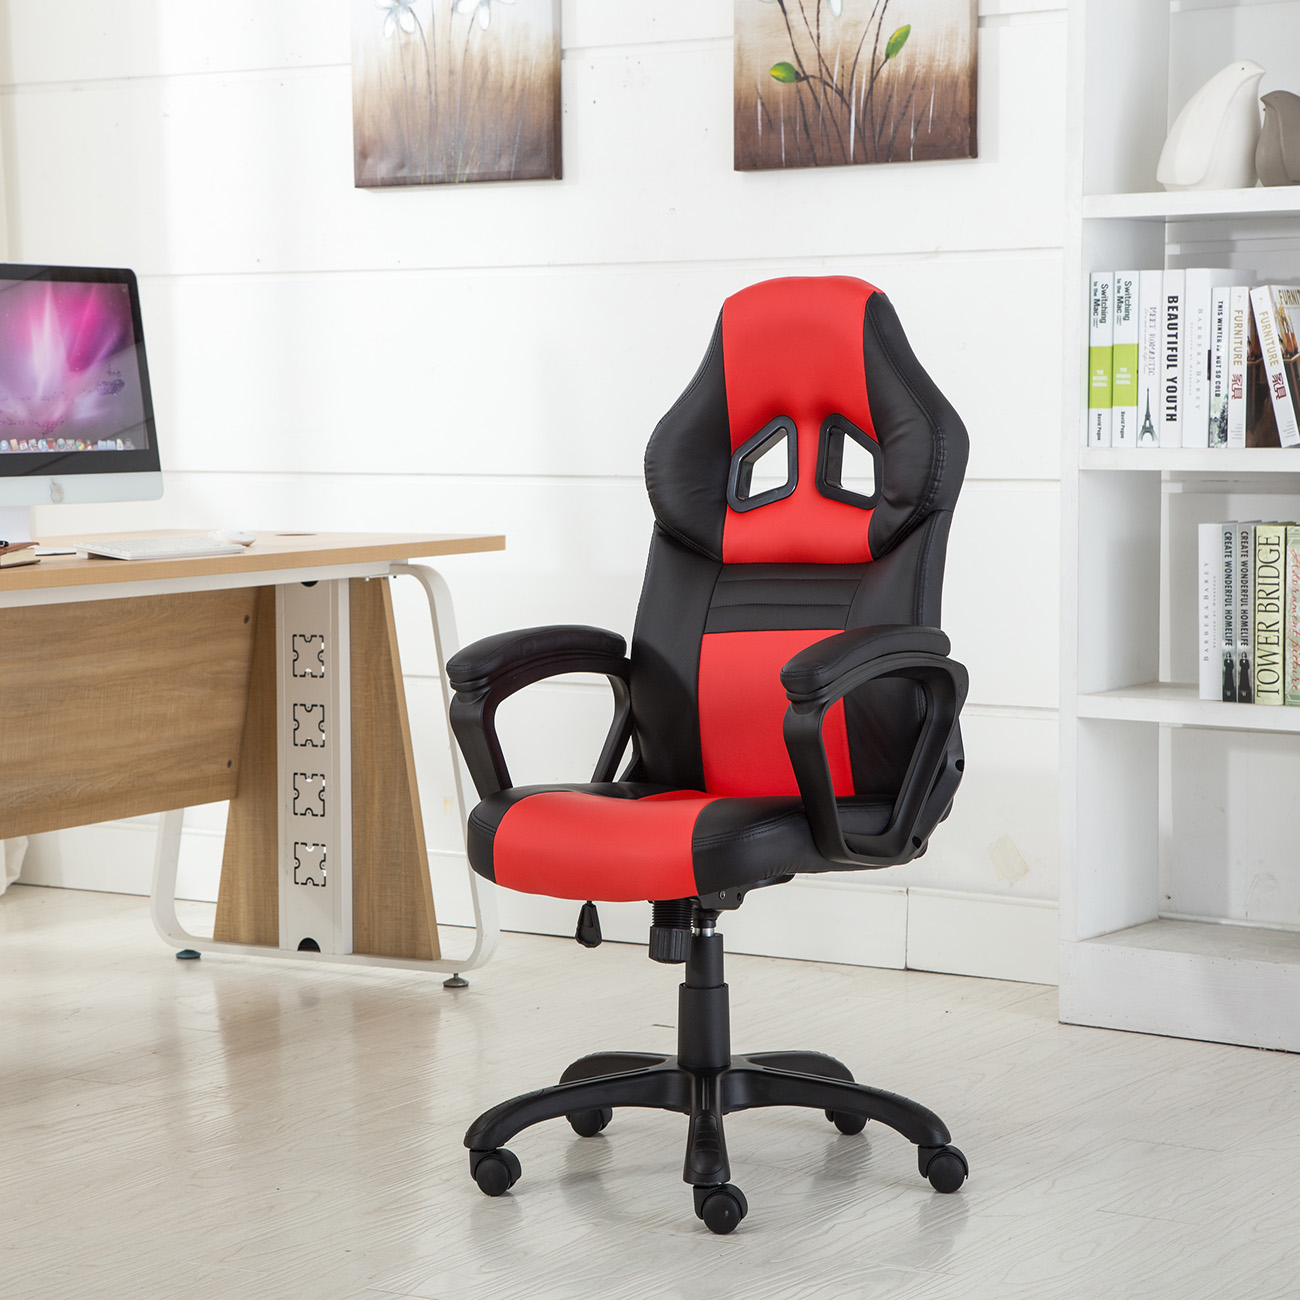 high back pu leather executive office desk race car seat racing gaming chair new ebay. Black Bedroom Furniture Sets. Home Design Ideas